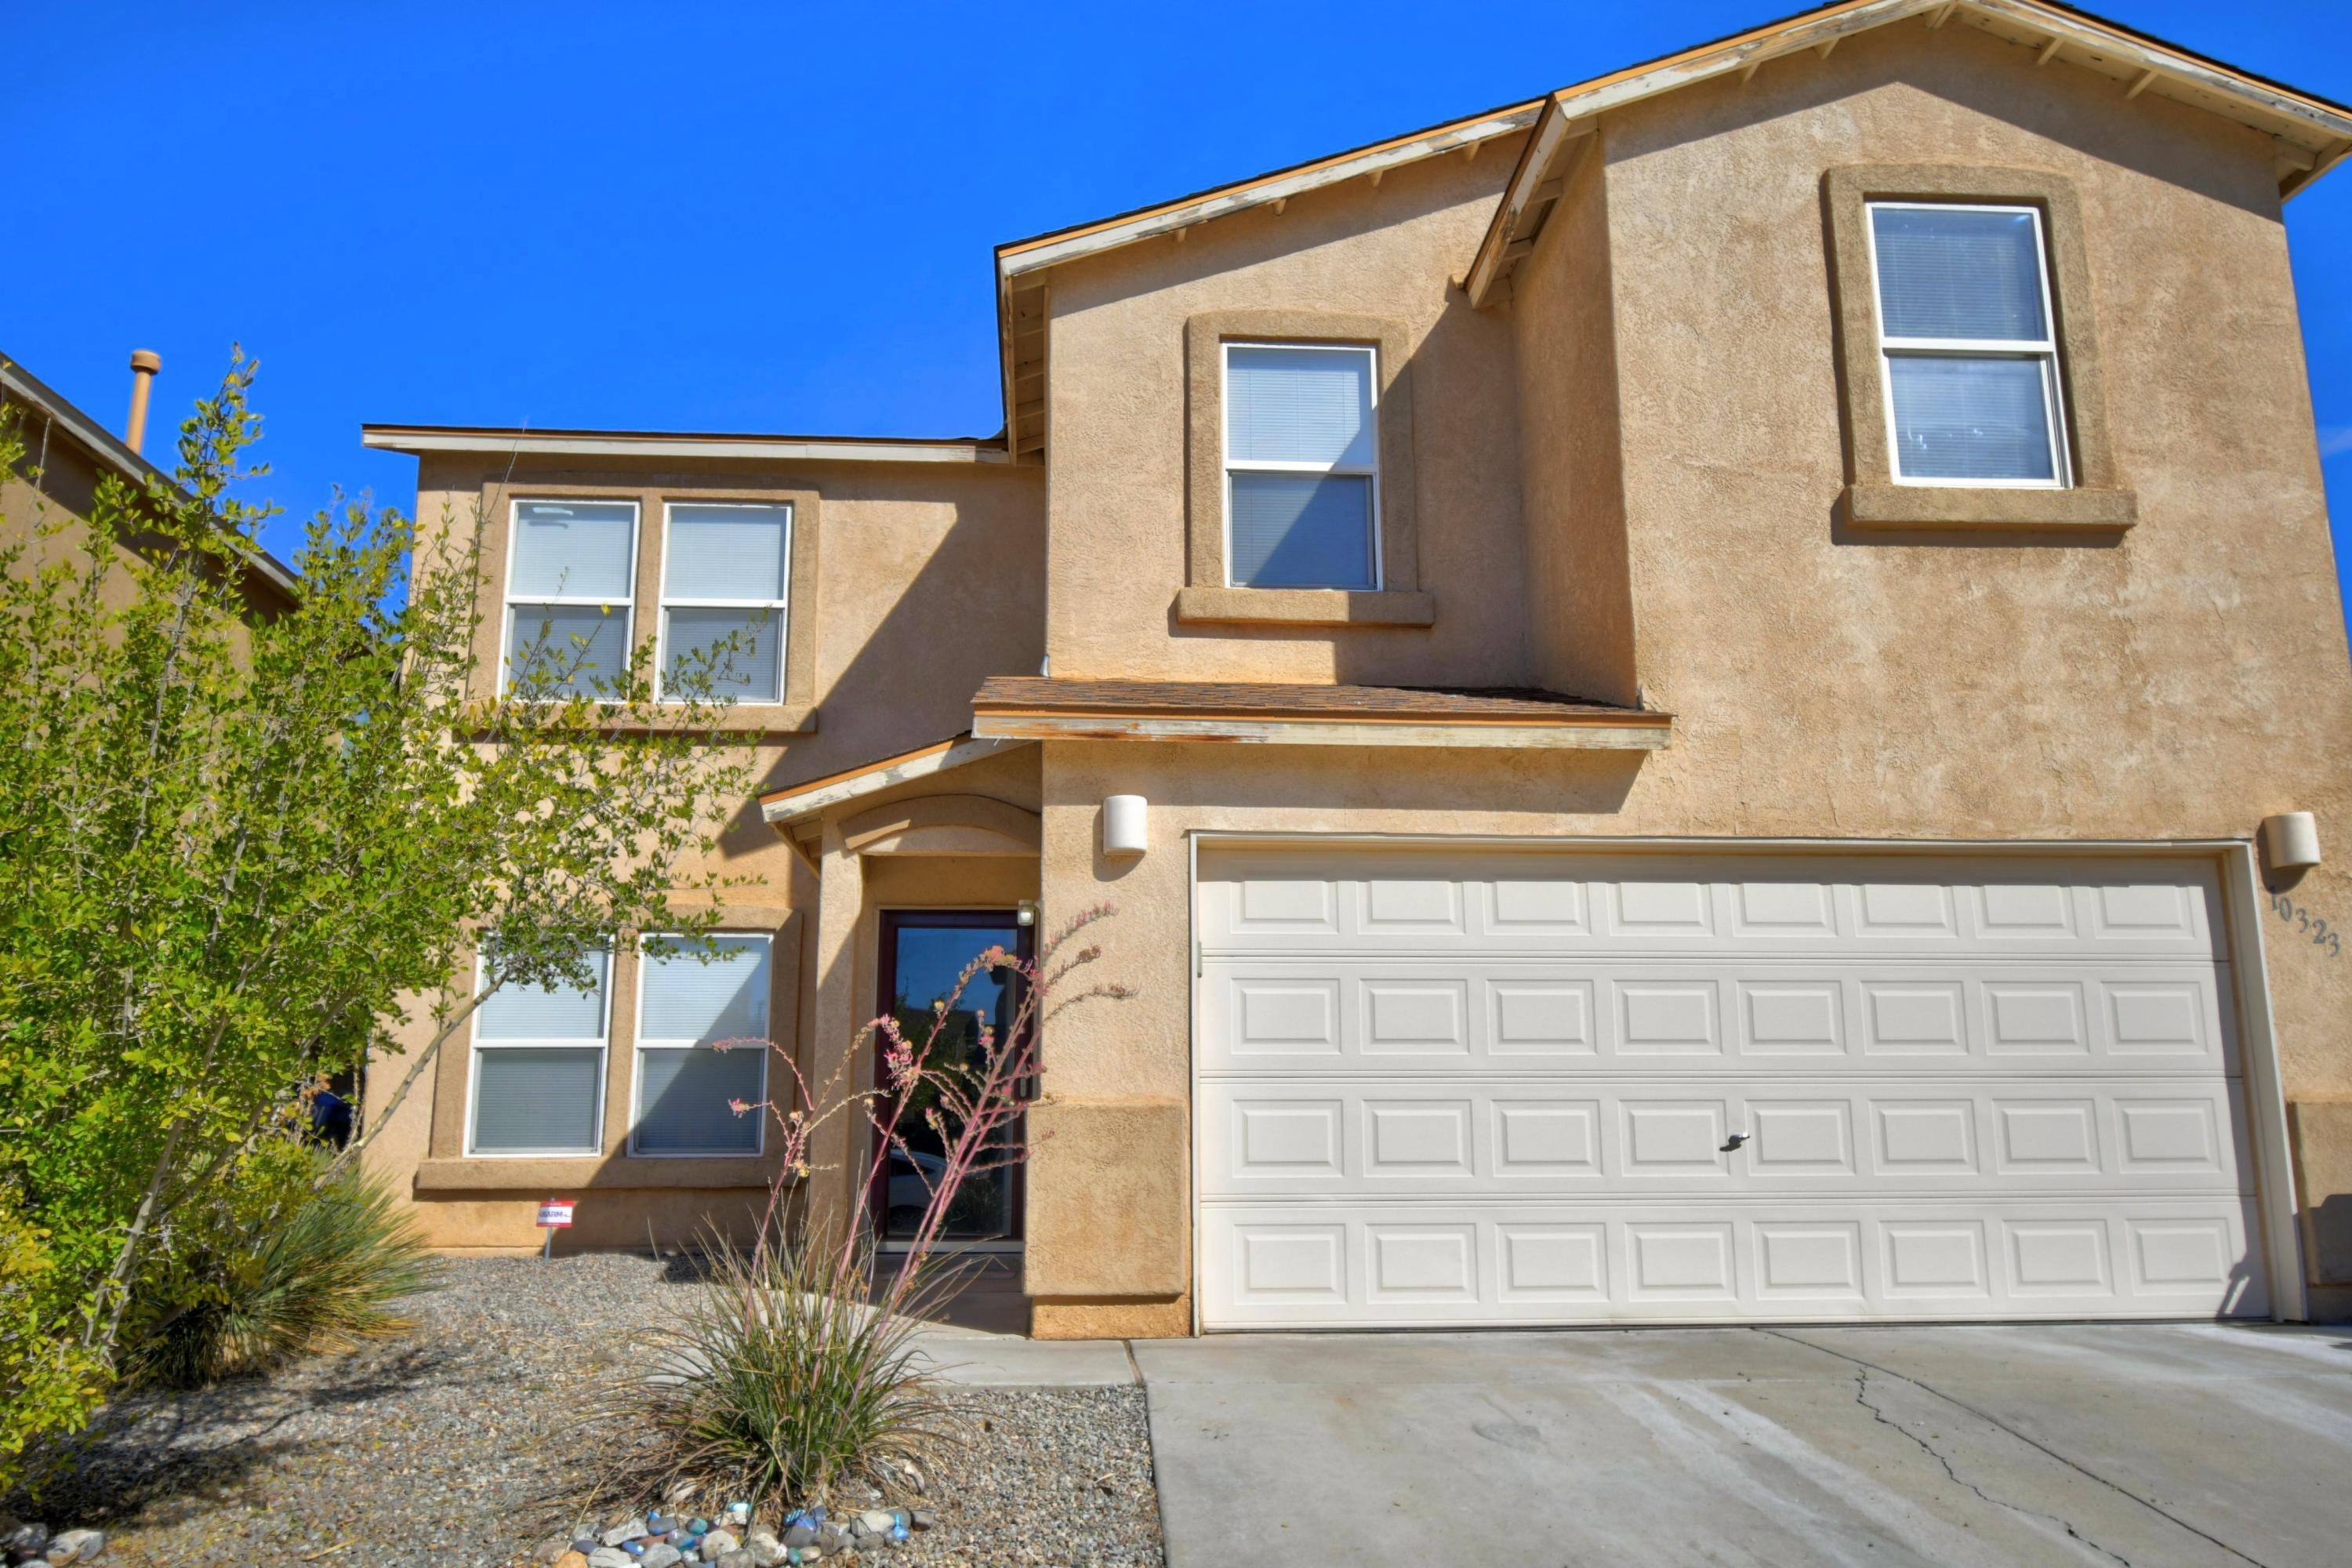 4 bedrooms with fresh paint and brand new diagonal cut tile downstairs! Open and flowing floorpan with huge rooms, walk-in closests, updated light fixtures/ceiling fans and refrigerated air!! Huge master suite, with double sinks, garden tub and separate shower!